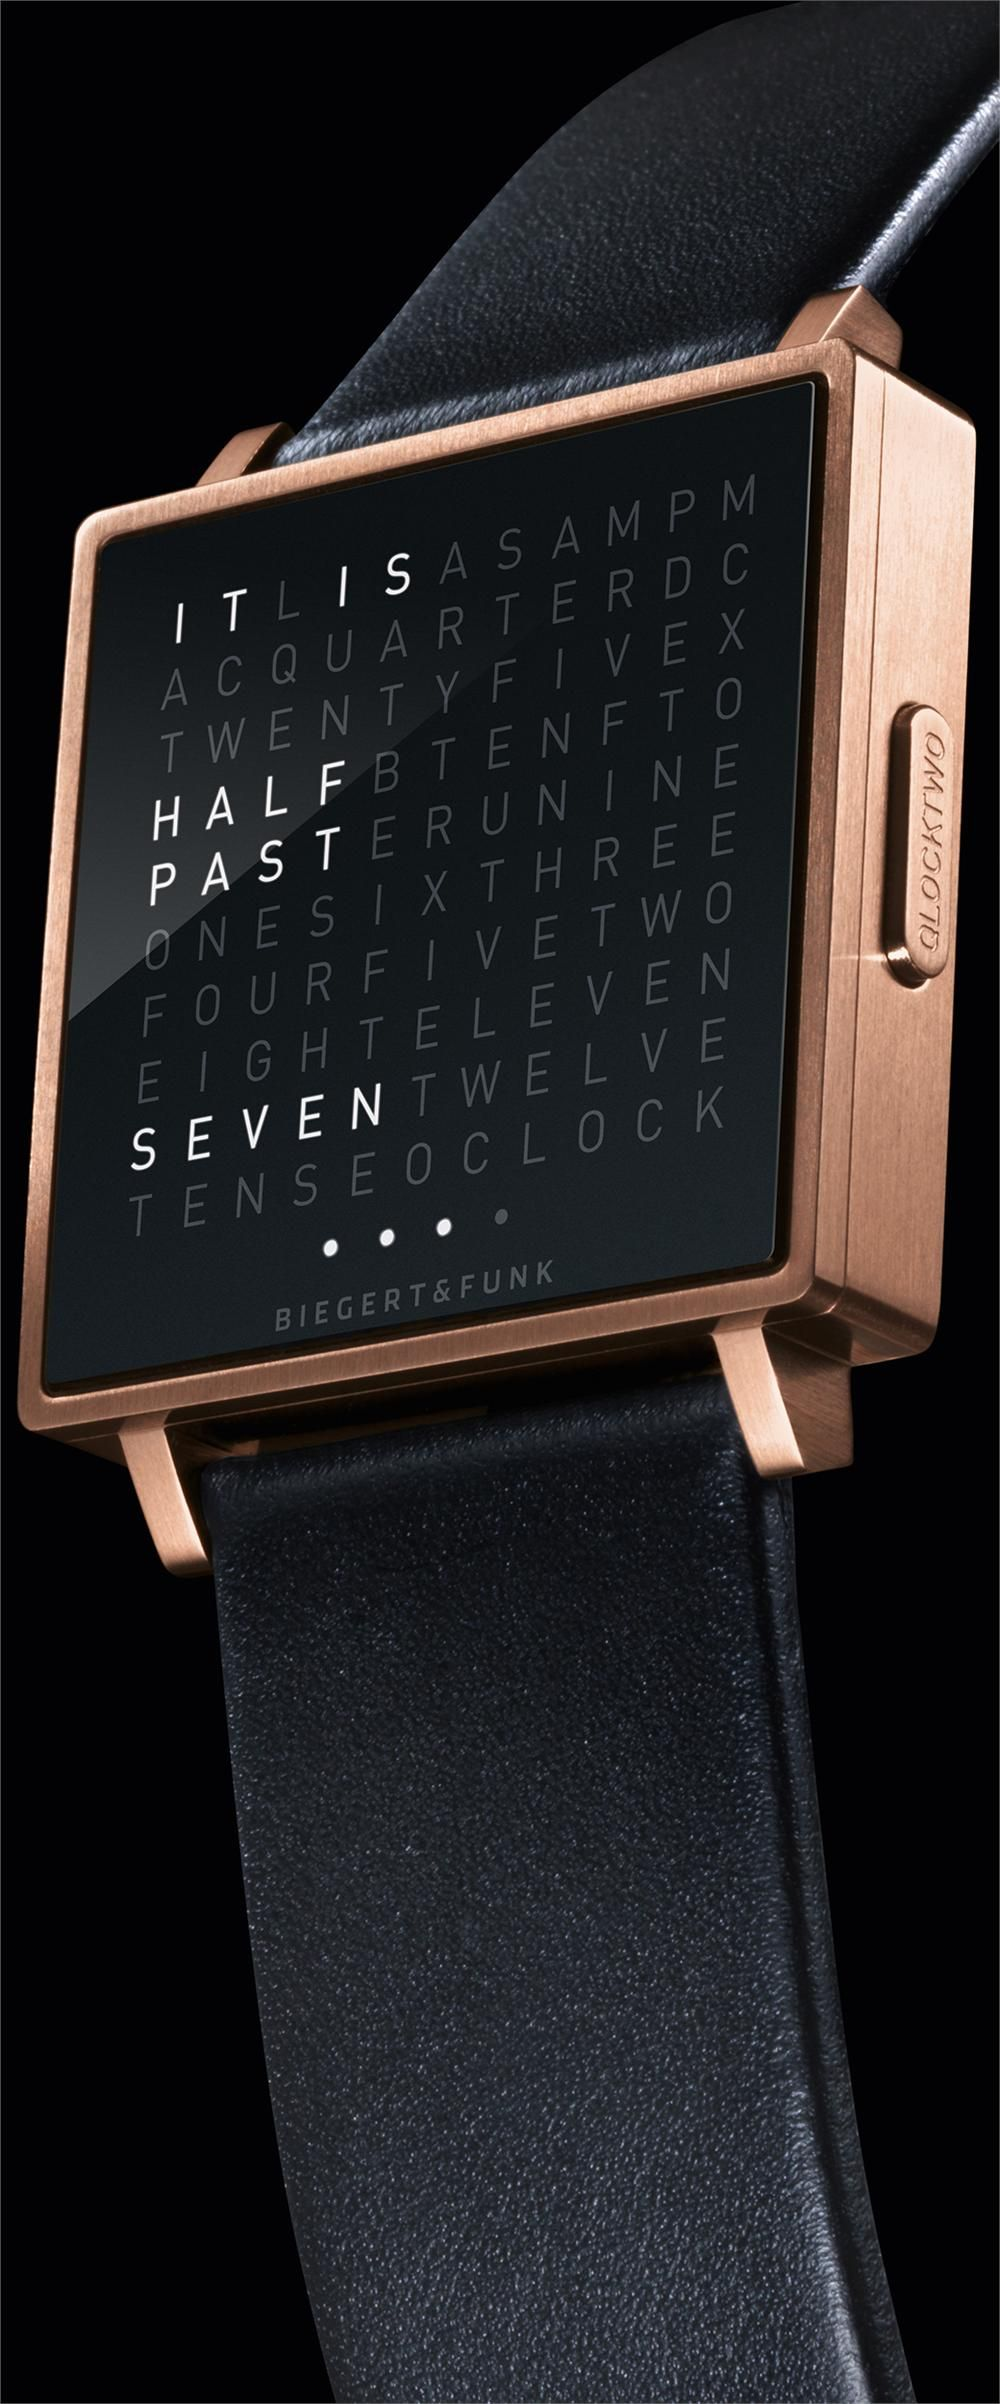 biegert funk qlocktwo w wristwatch by andreas funk 35x35mm indecipherable or. Black Bedroom Furniture Sets. Home Design Ideas